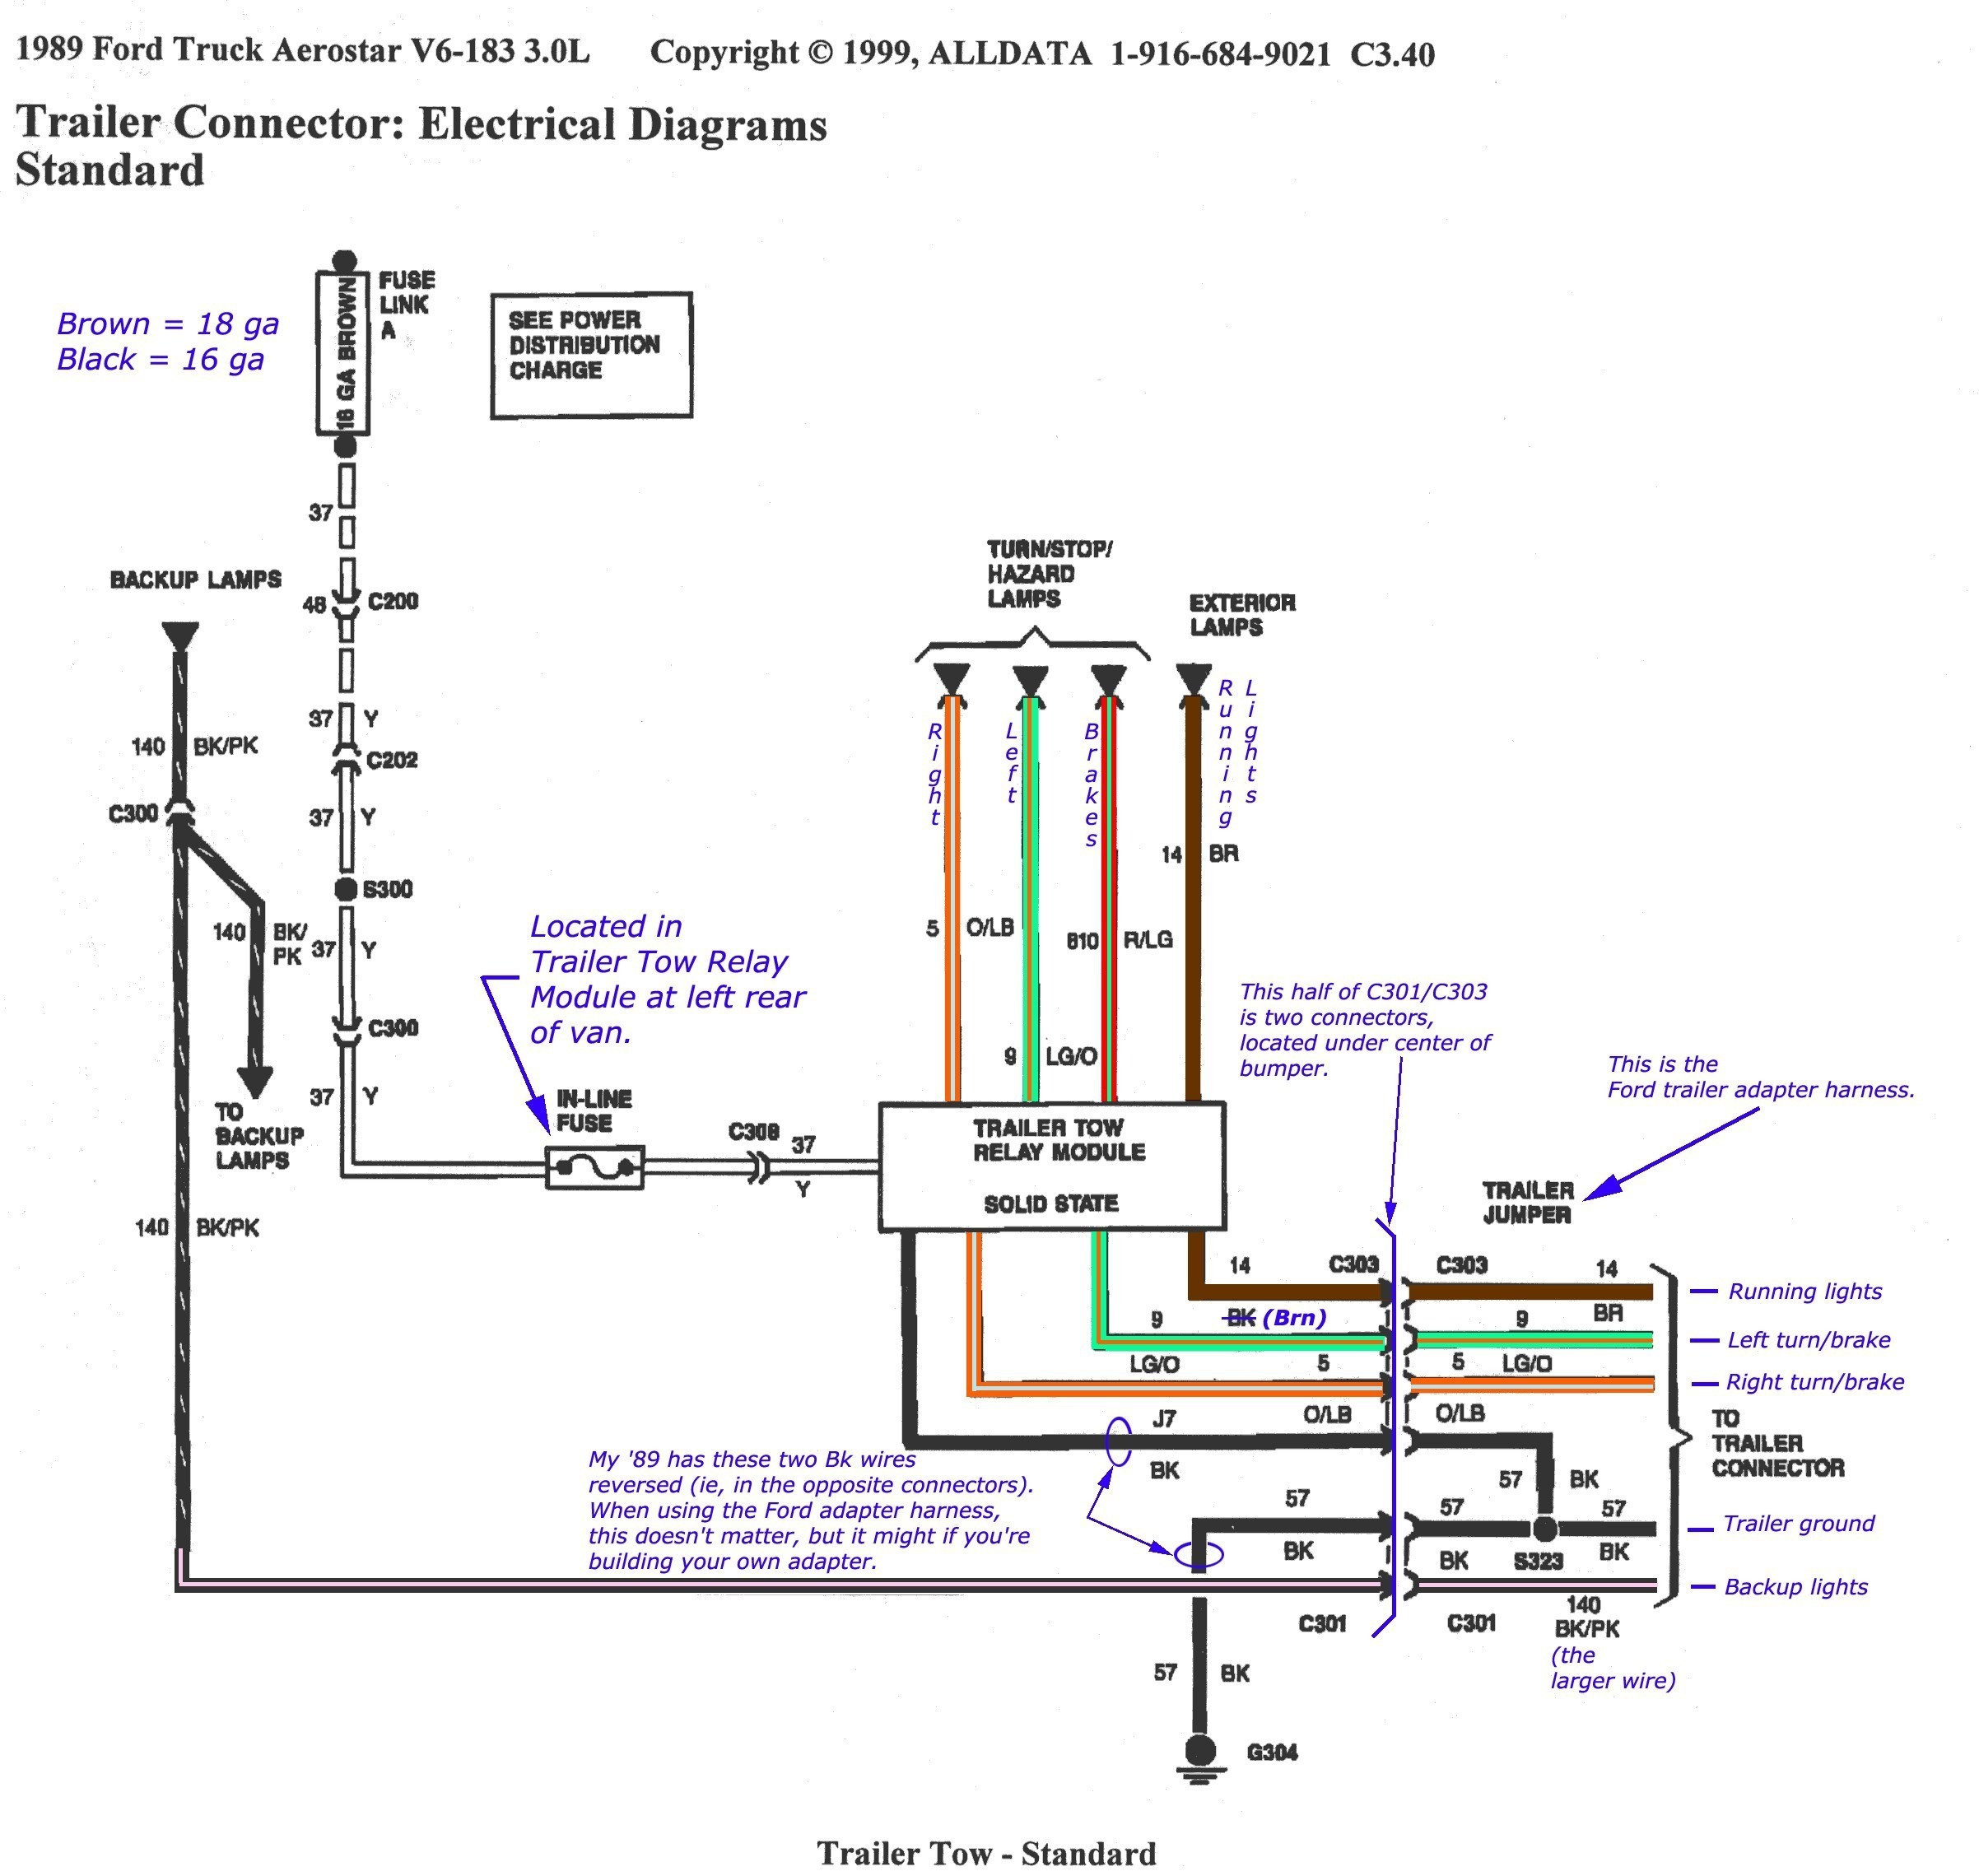 utility trailer wiring diagram Collection-Wiring Diagrams for Utility Trailer Best Utility Trailer Wiring Diagram Best Best Wiring Diagram Od Rv 19-i